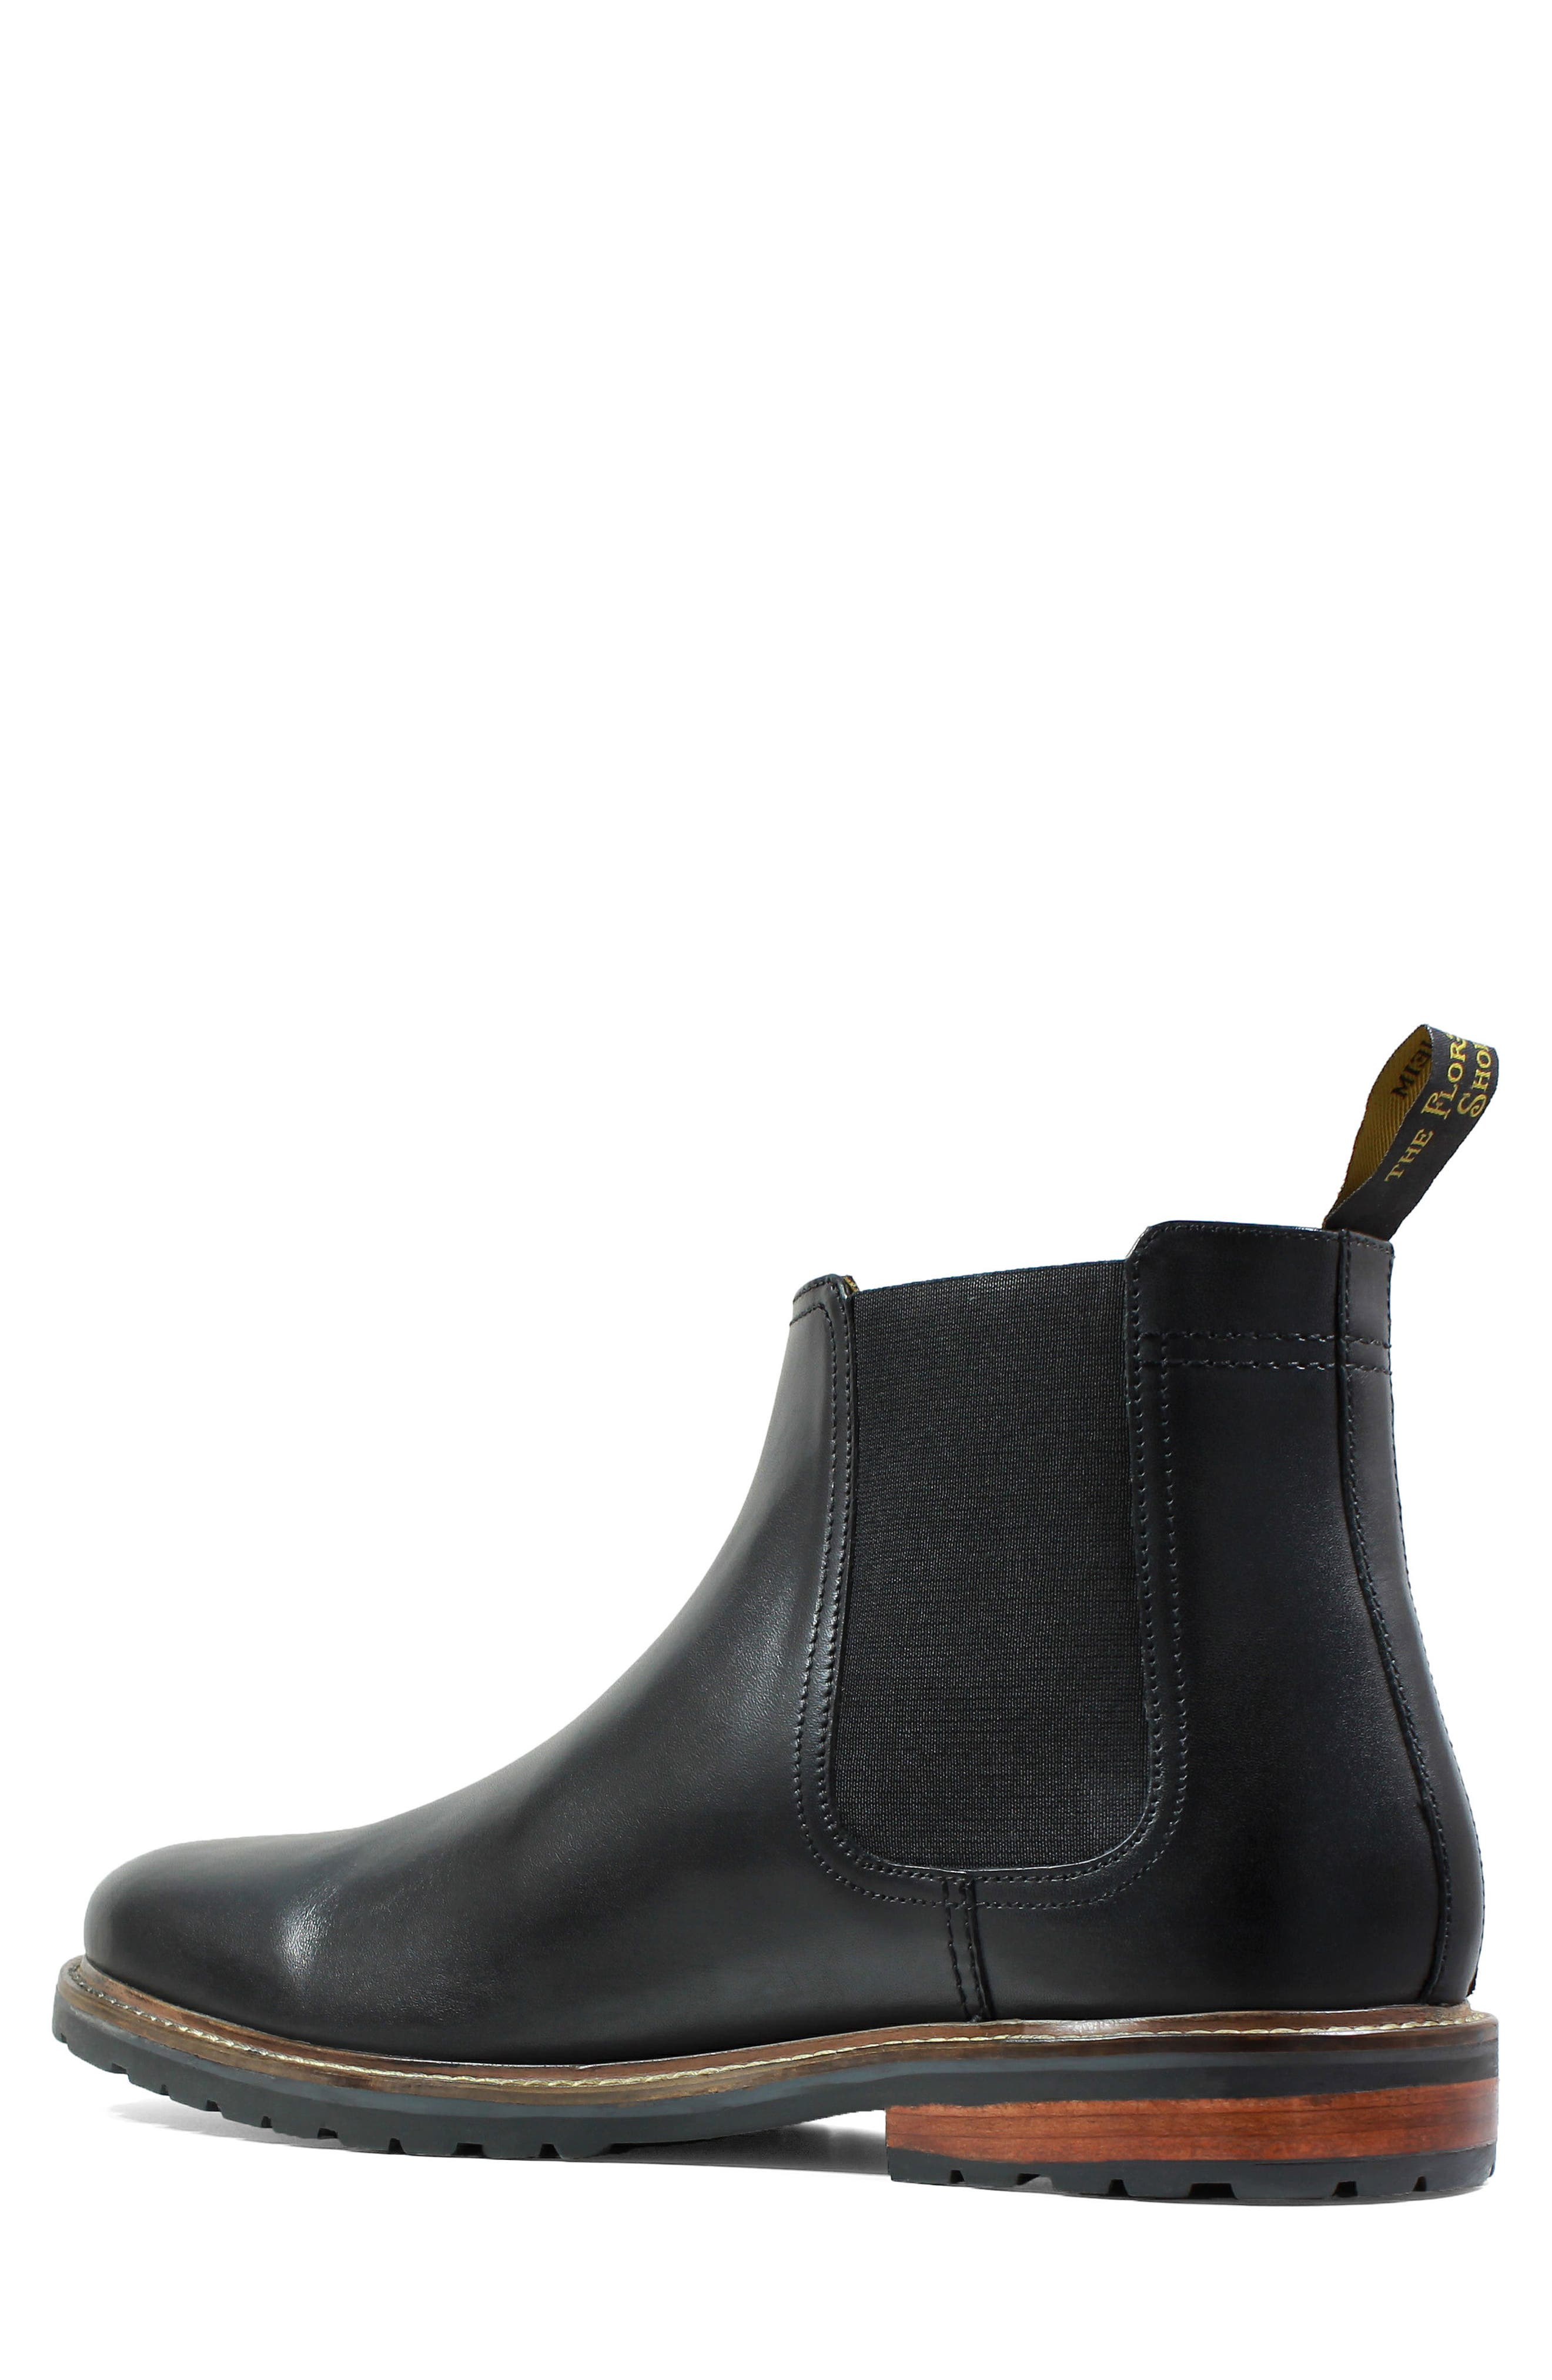 Estabrook Mid Chelsea Boot,                             Alternate thumbnail 2, color,                             BLACK LEATHER